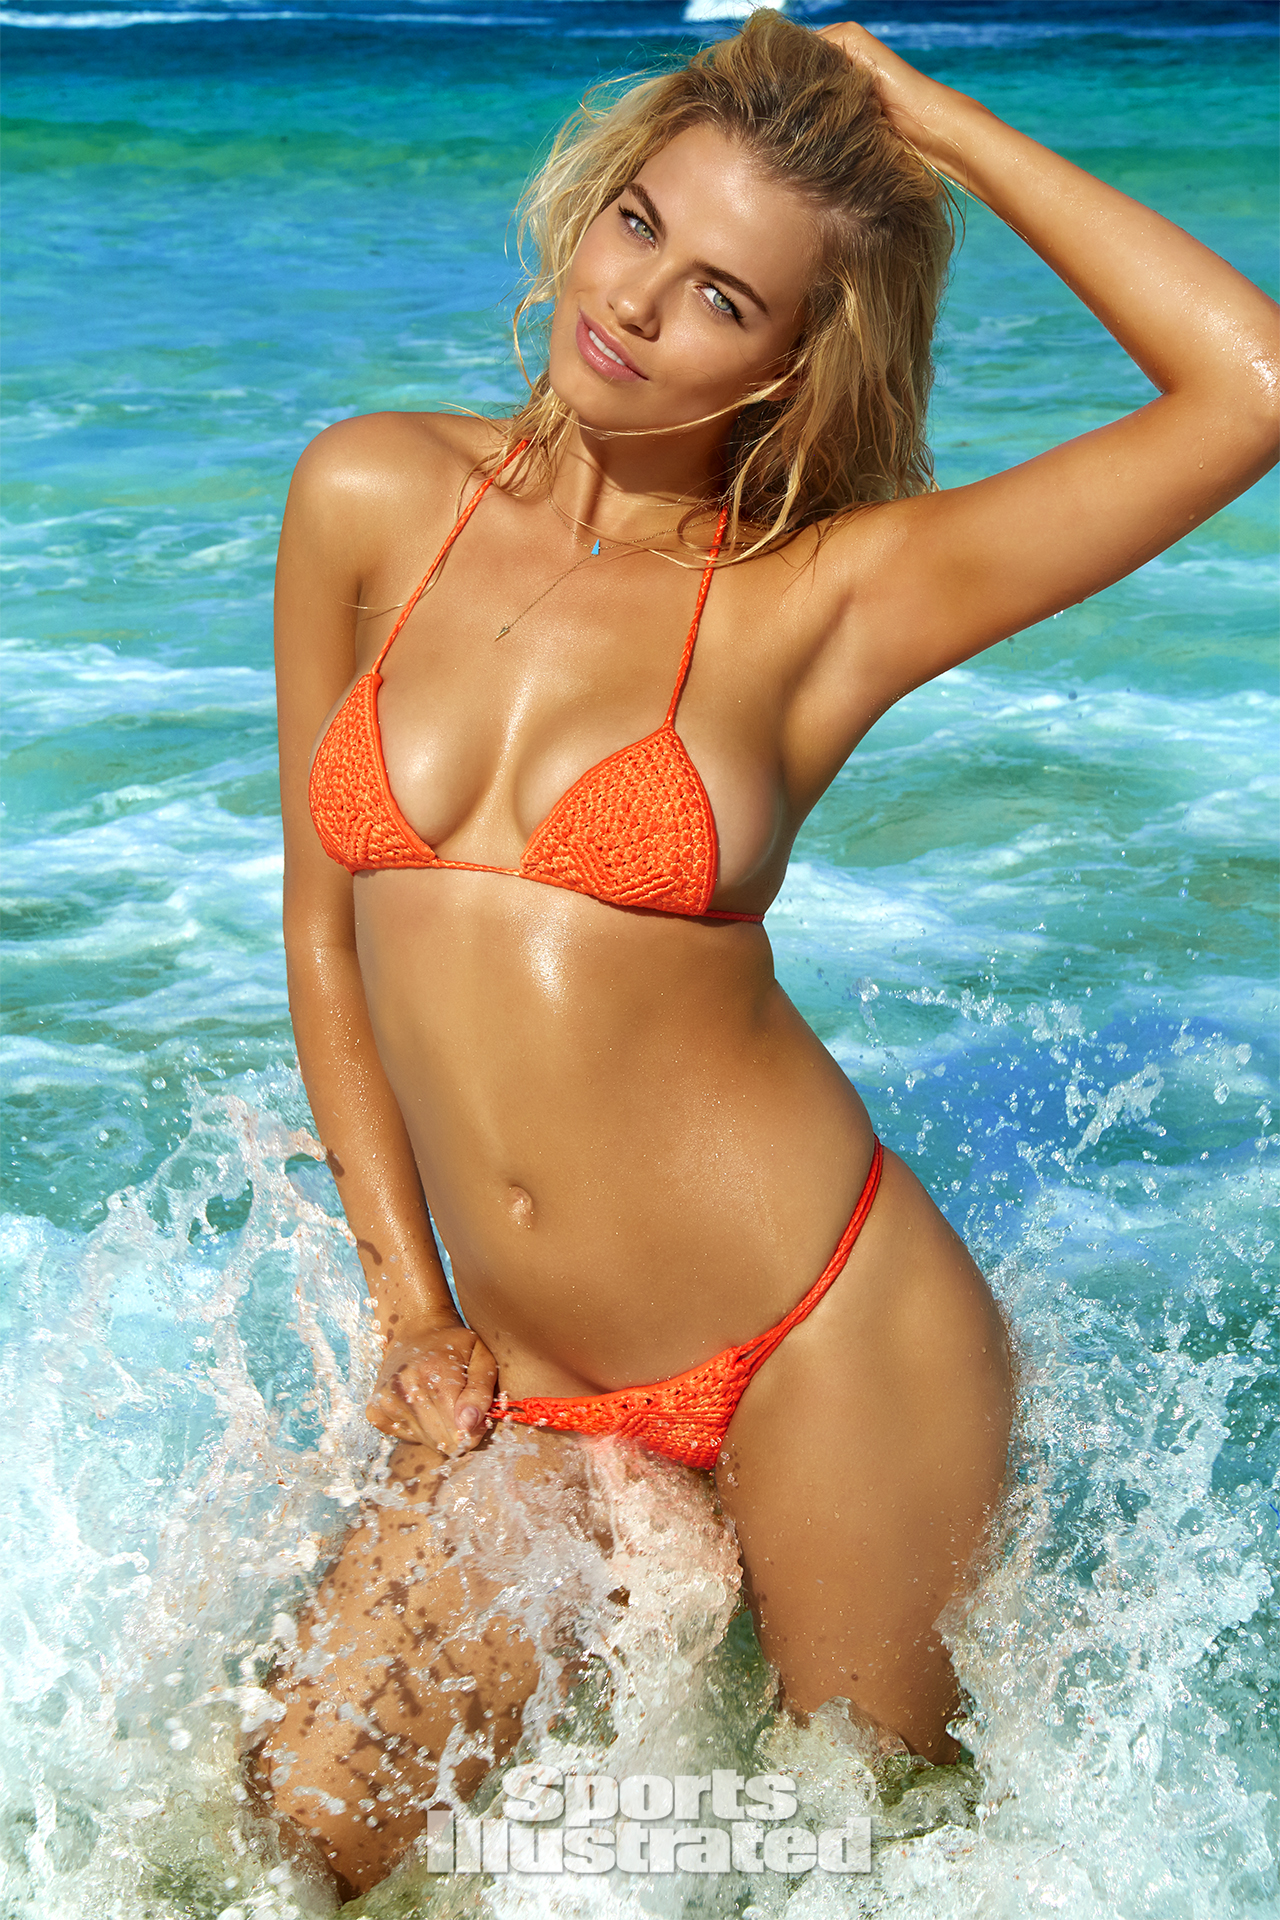 Hailey Clauson was photographed by James Macari in Turks & Caicos. Swimsuit by Midnight Swimwear.